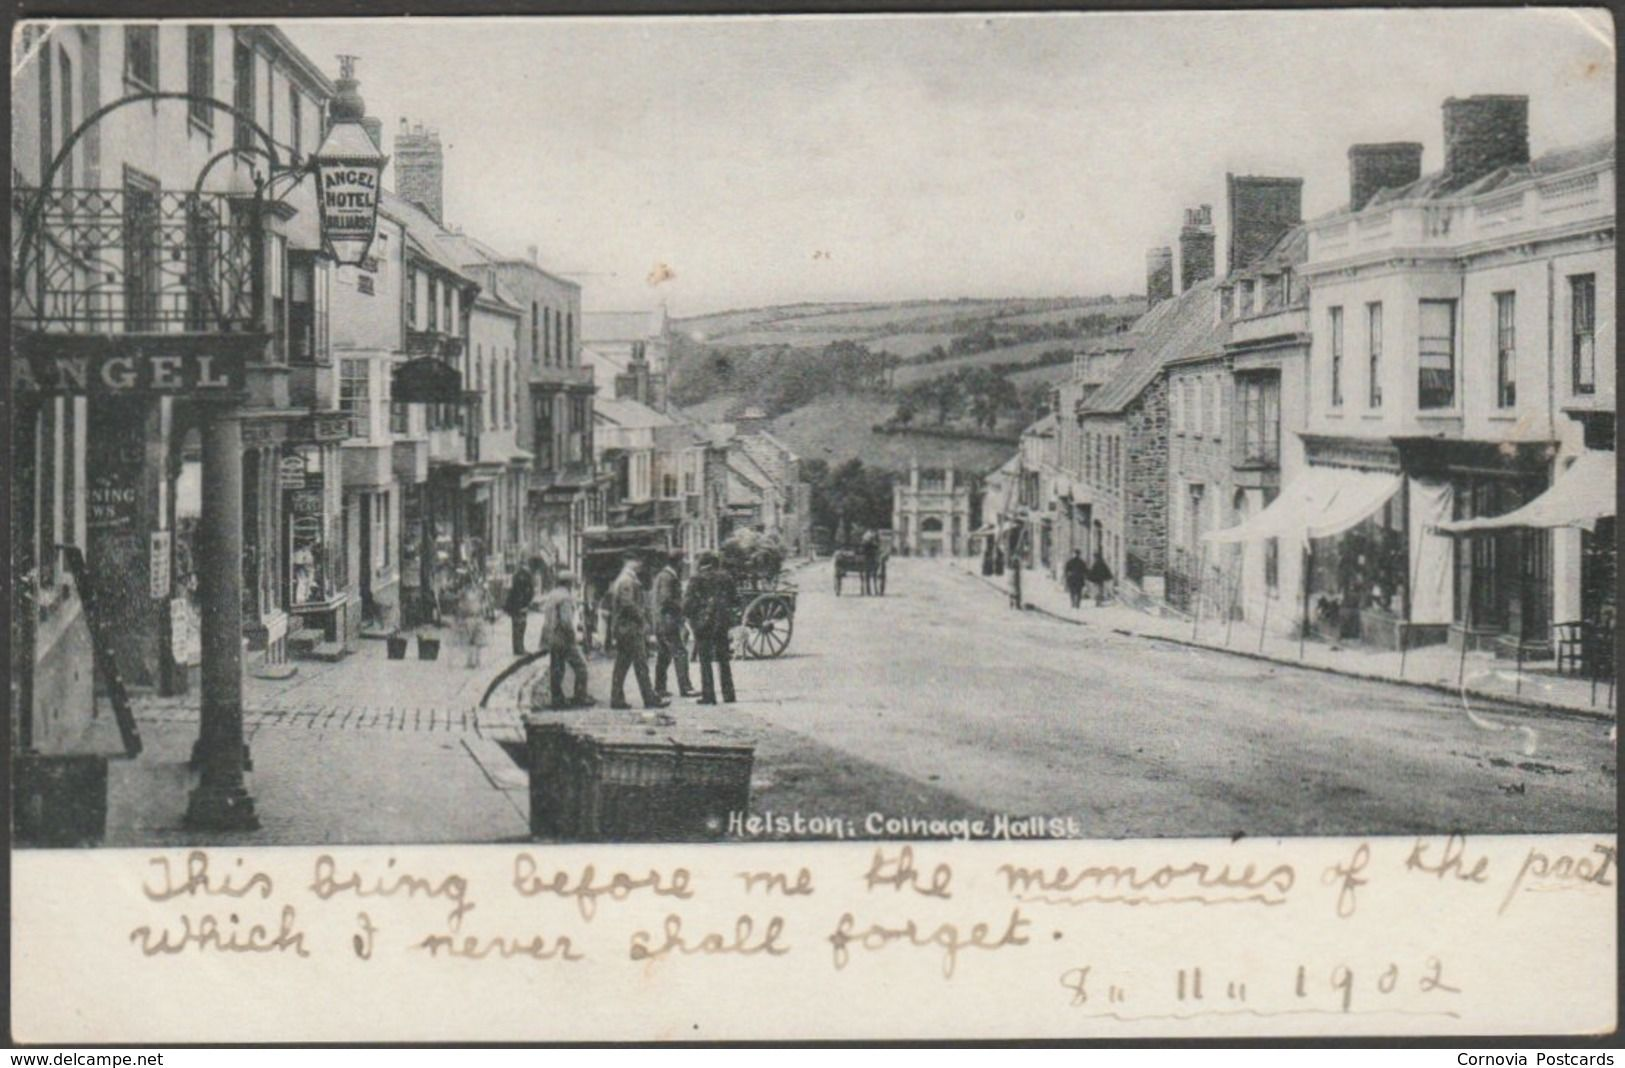 Coinage Hall Street, Helston, Cornwall, 1902 - Frith's